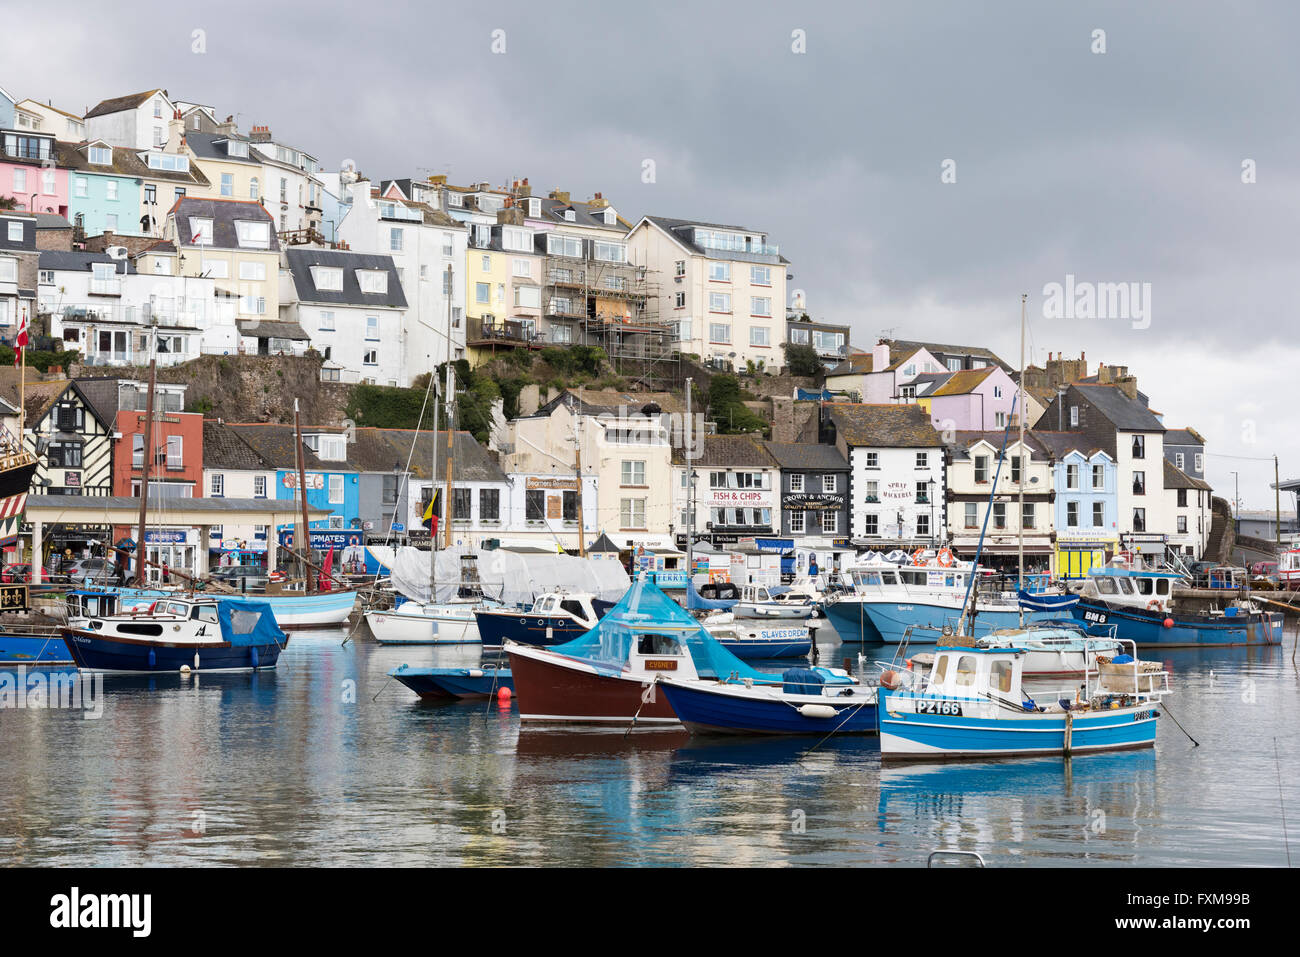 Fishing boats moored in the harbour at the fishing port of Brixham Devon UK - Stock Image